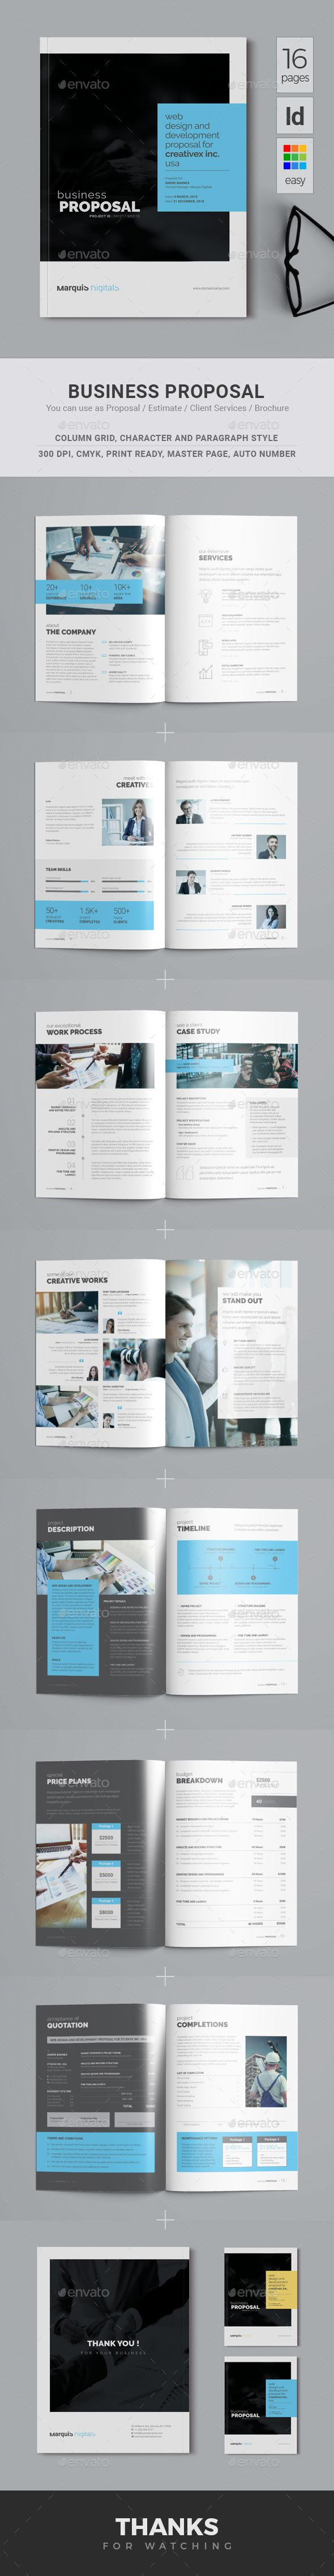 This 16 pages Professional Business Proposal Template can be the best choice for you due to it's huge options like your company details, services, work process etc. will help you to show your strengths to your client. Not only that, if you want, you can add or remove any pages by following a simple steps. You can use this proposal for any purpose like project proposal, company profile etc.